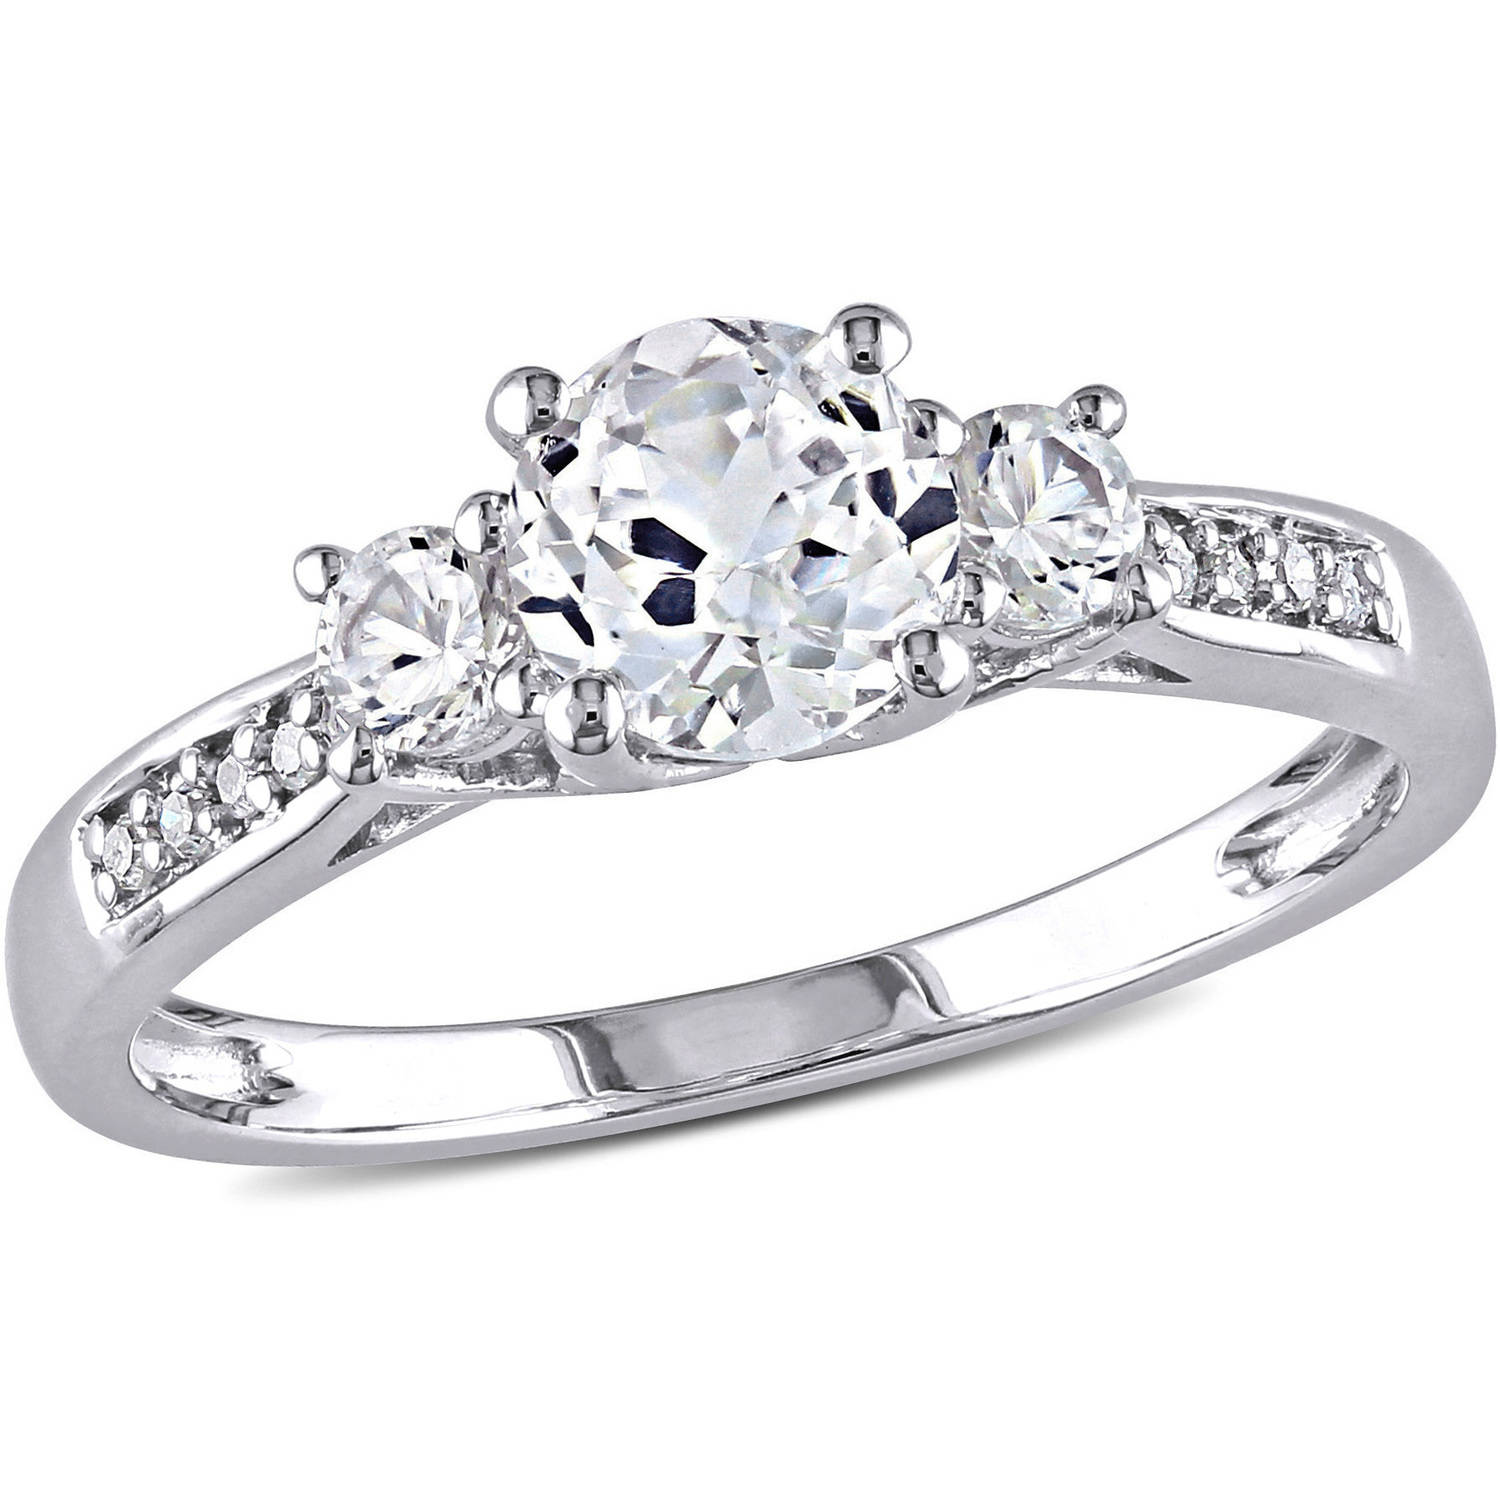 Engagement Rings Affordable: Tips For Choosing Affordable Engagement Rings For Women